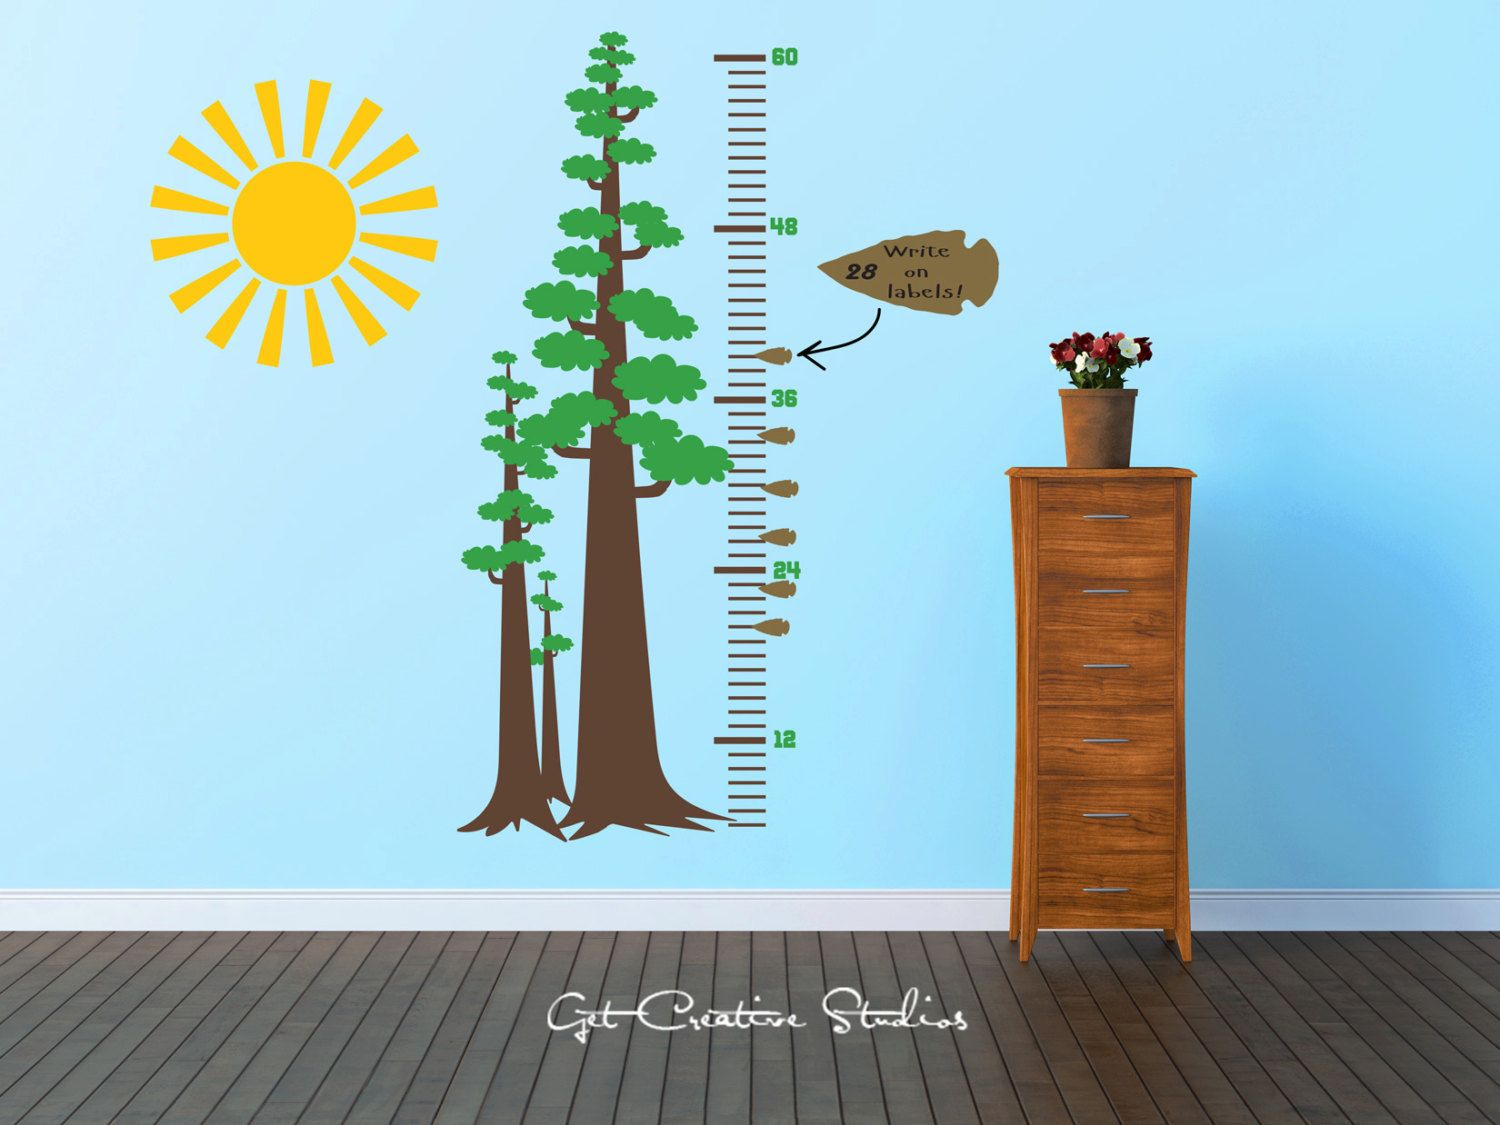 Tree growth chart decal sequoia wall decal national park tall tree growth chart decal sequoia wall decal national park tall forest decal arrowhead indian heritage decor nvjuhfo Gallery